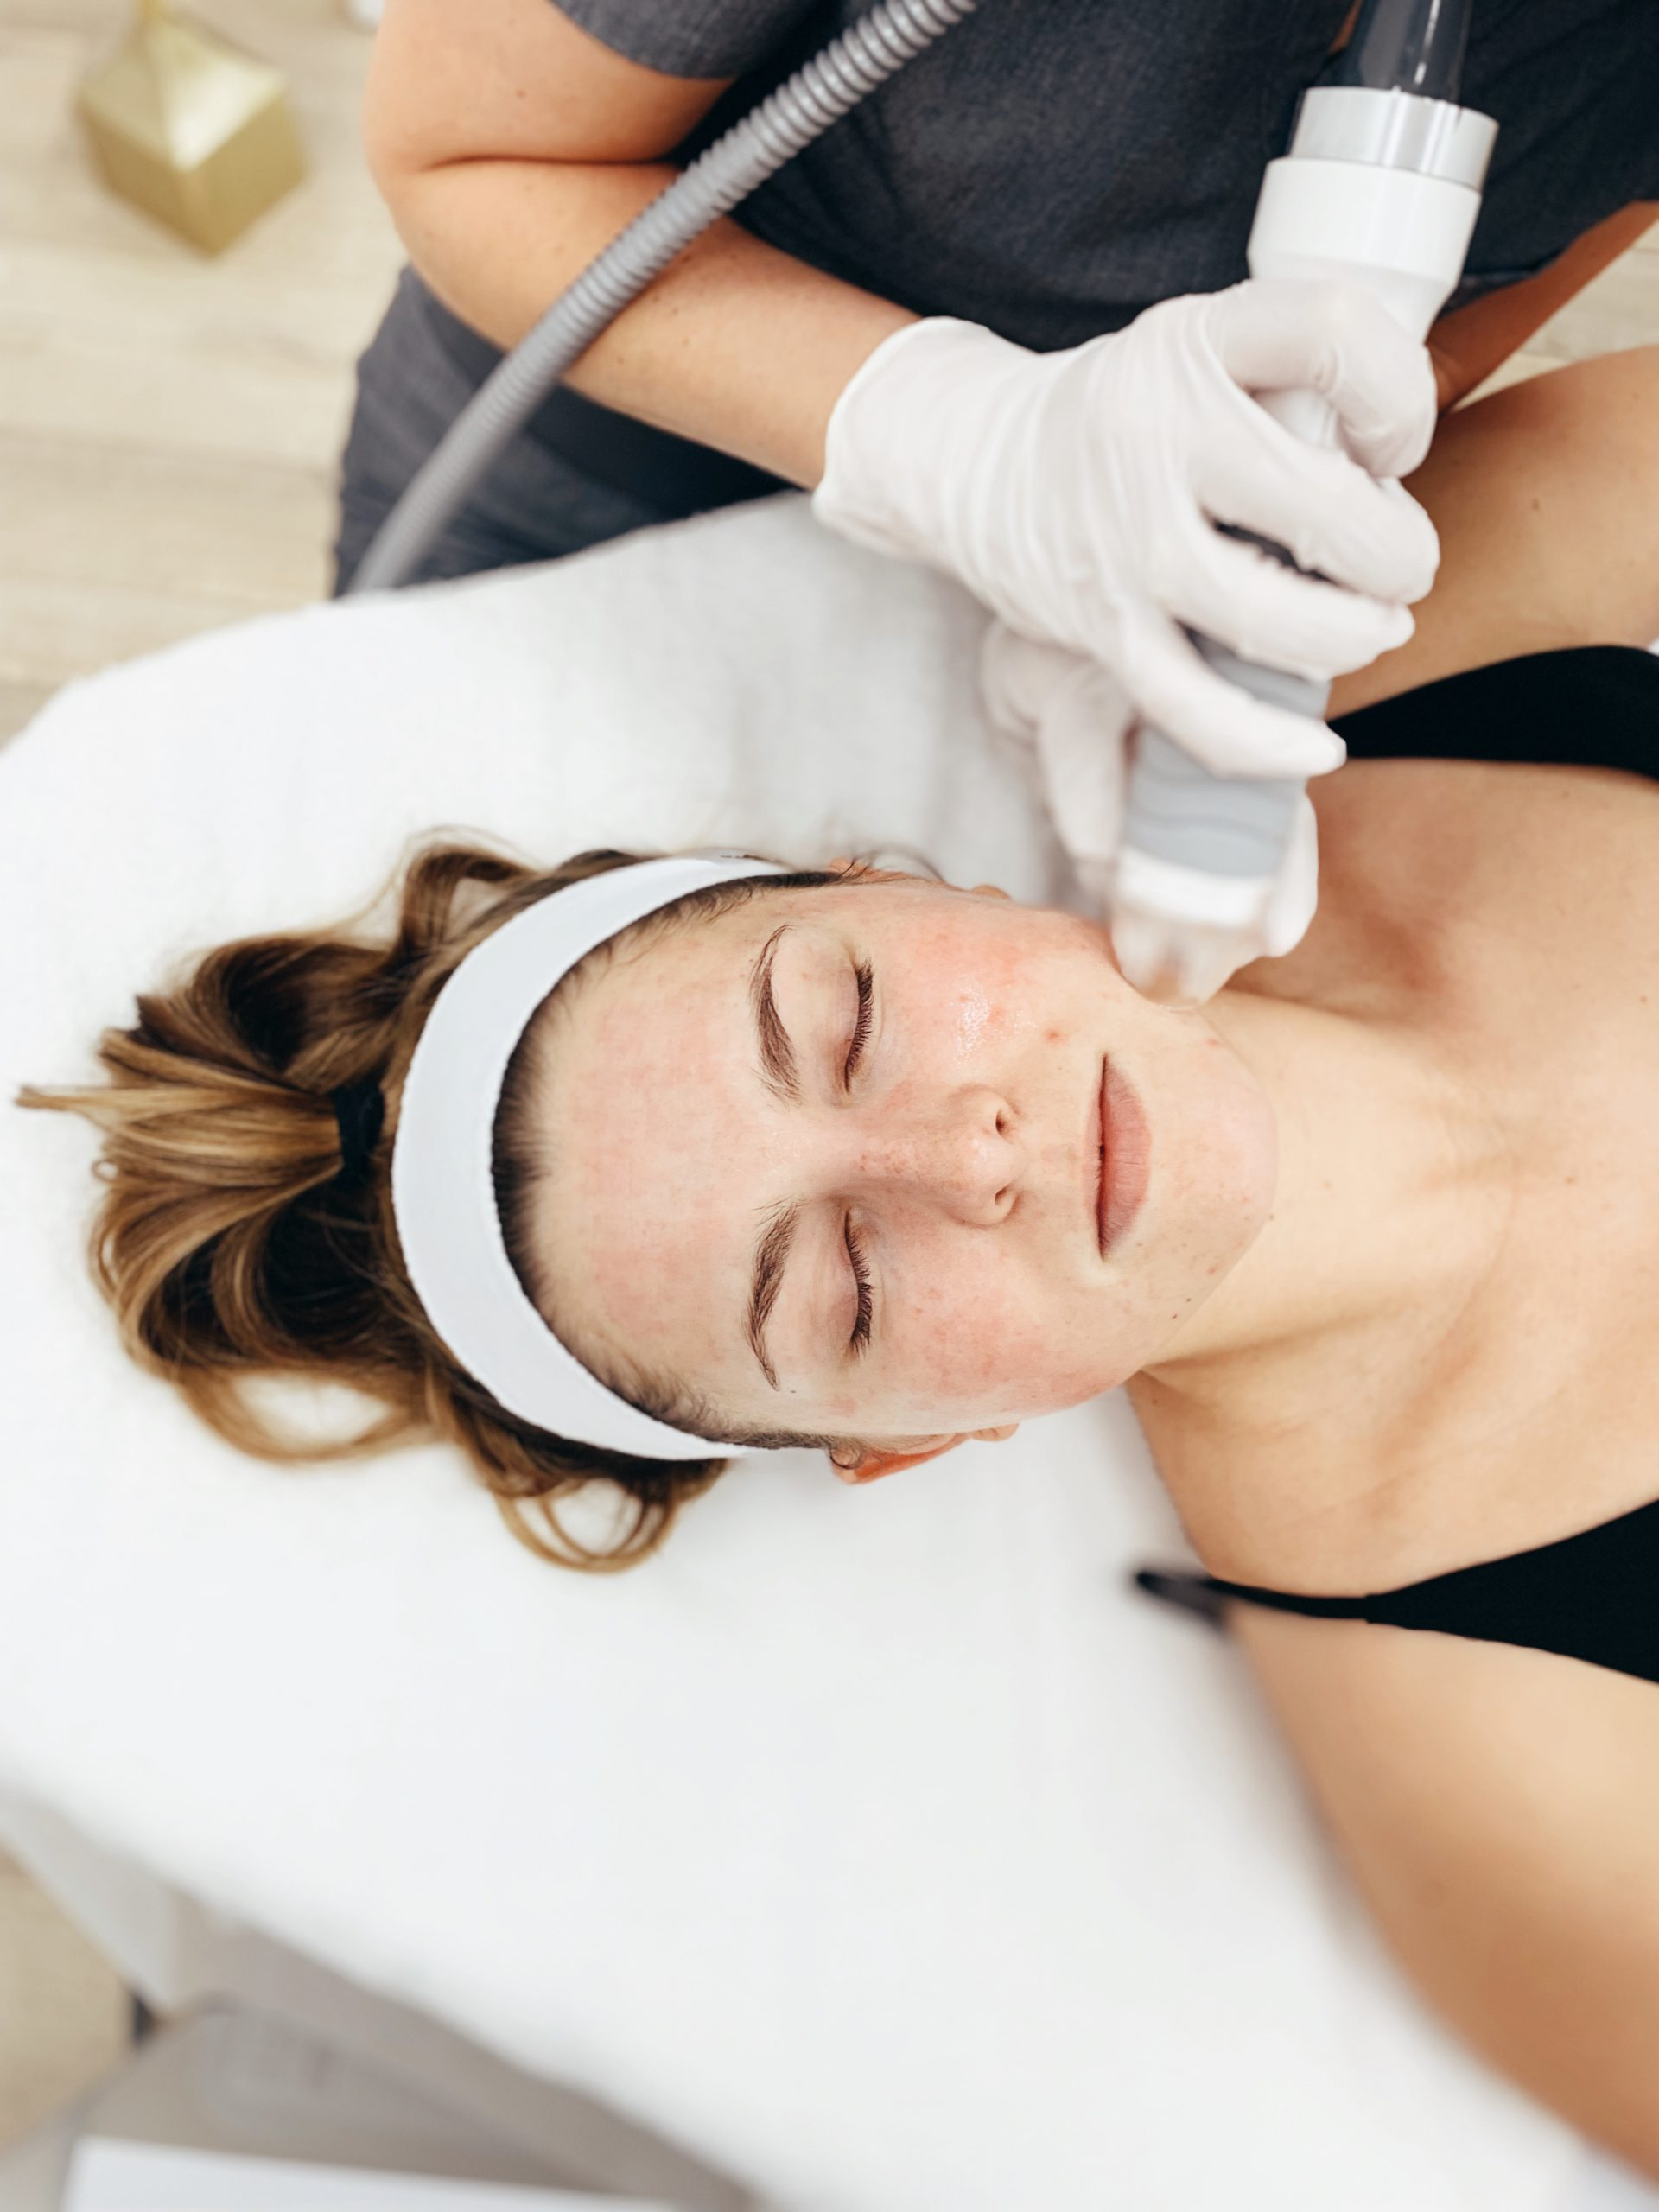 young woman receiving vivace radiofrequency microneedling on the face